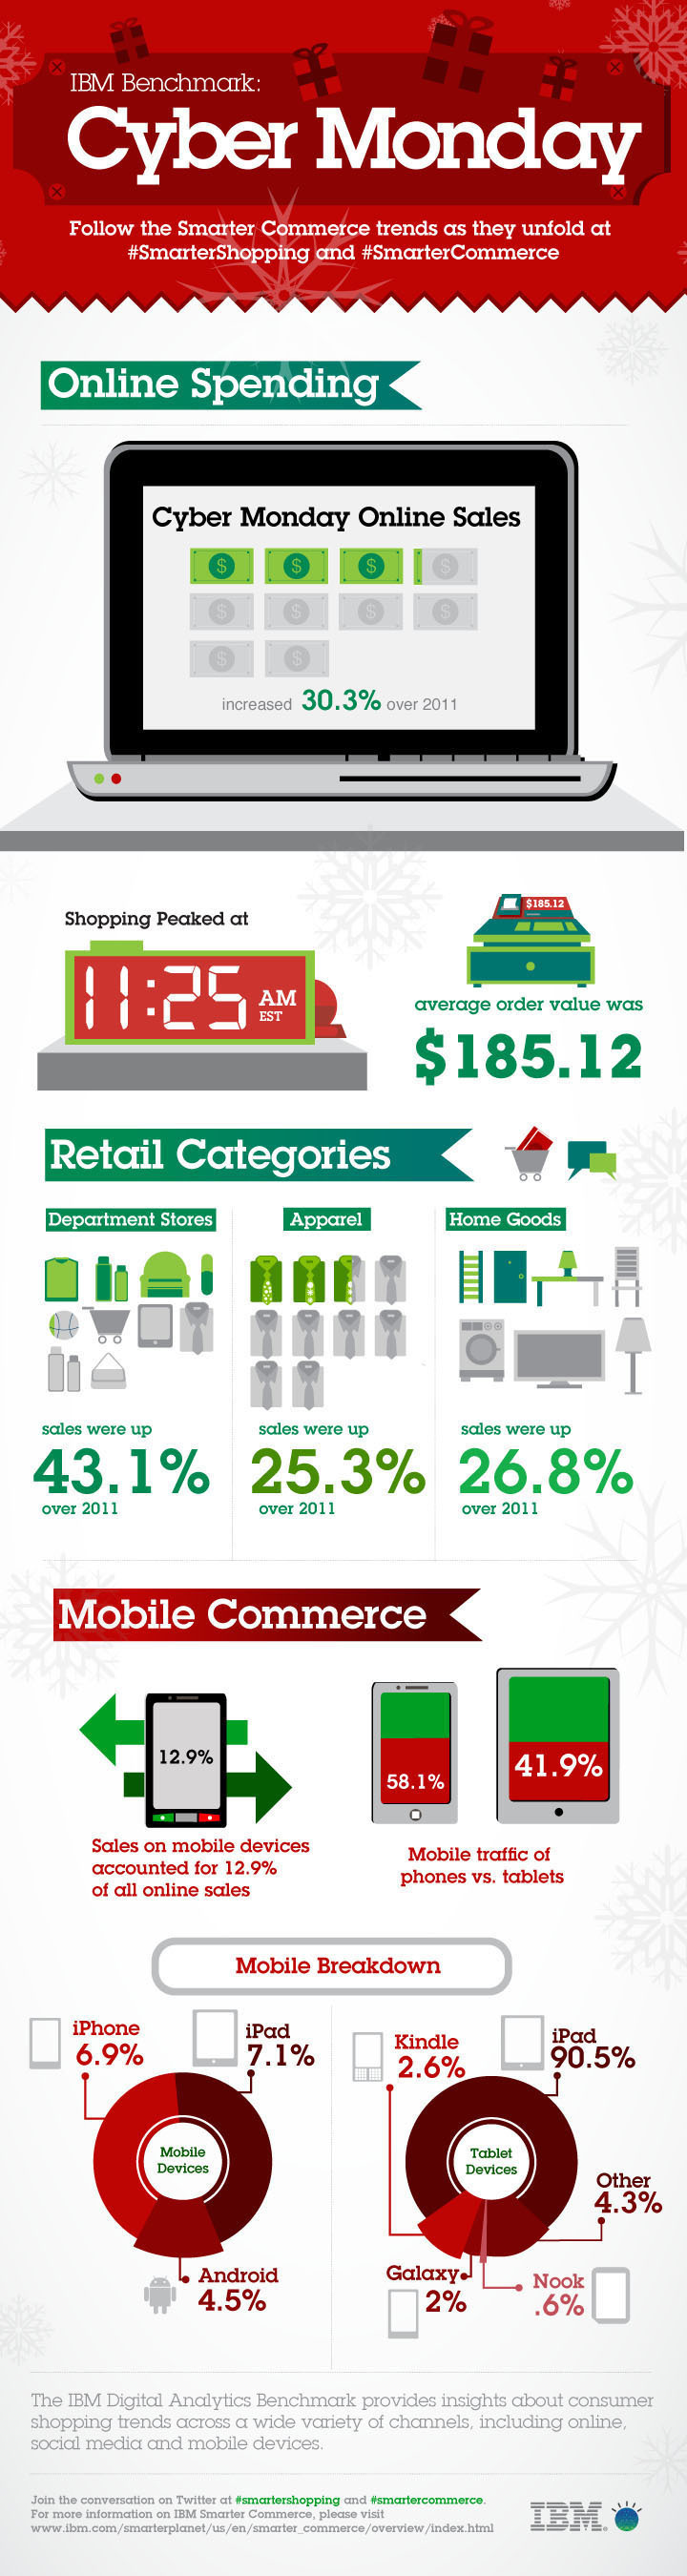 IBM Digital Analytics Benchmark: Cyber Monday 2012 Online Sales.  (PRNewsFoto/IBM)